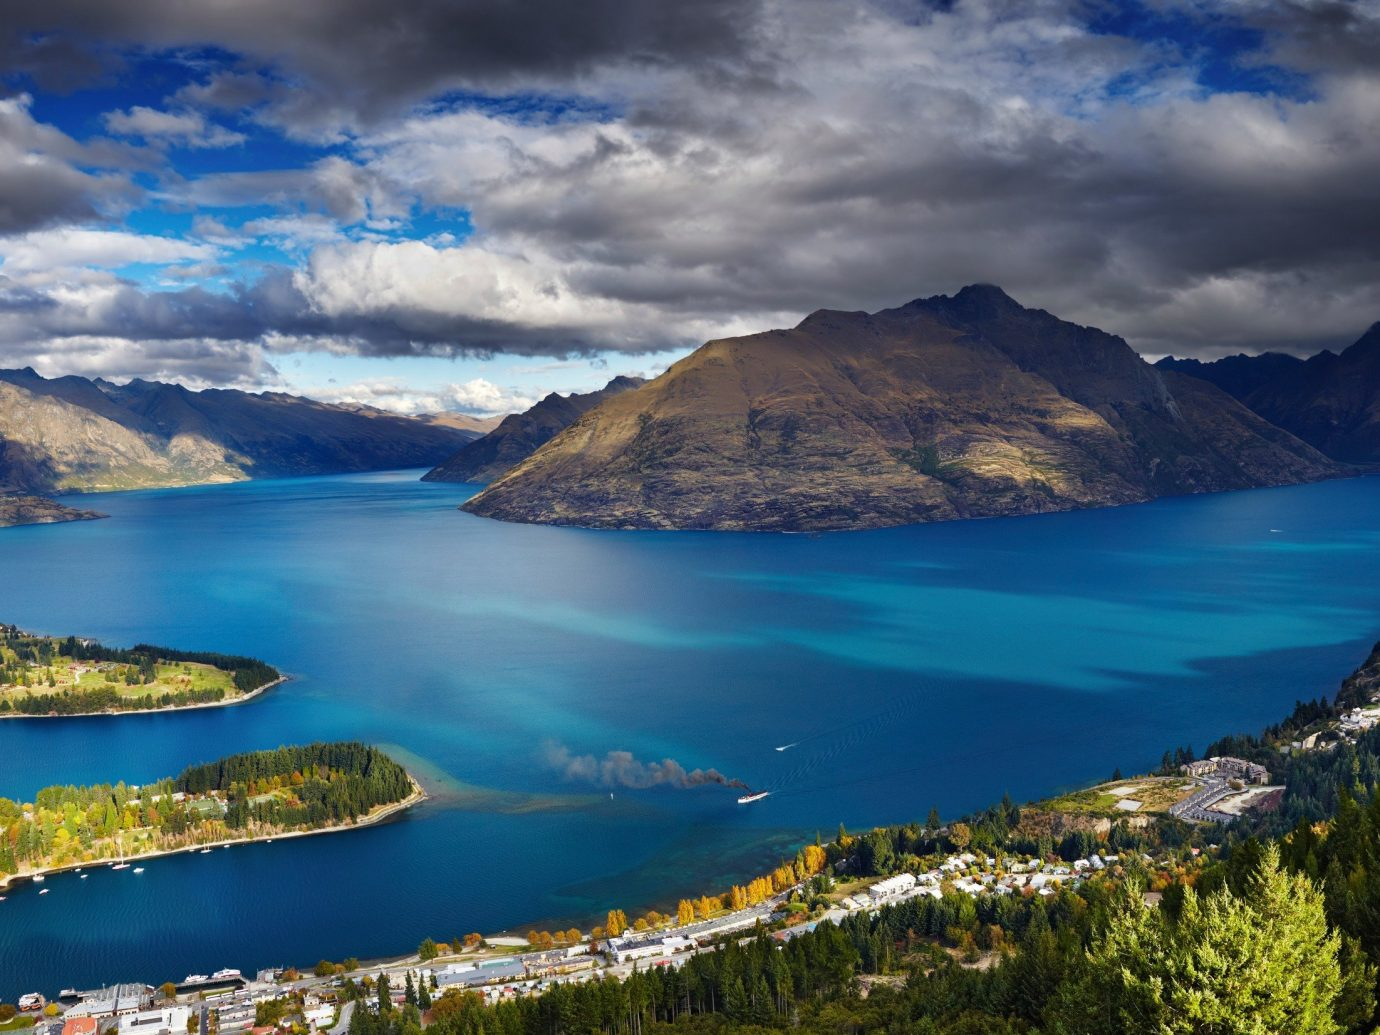 Trip Ideas sky water mountain outdoor Nature body of water Lake loch fjord Sea Coast mountain range bay crater lake reservoir reflection landscape glacial landform rock clouds cloudy